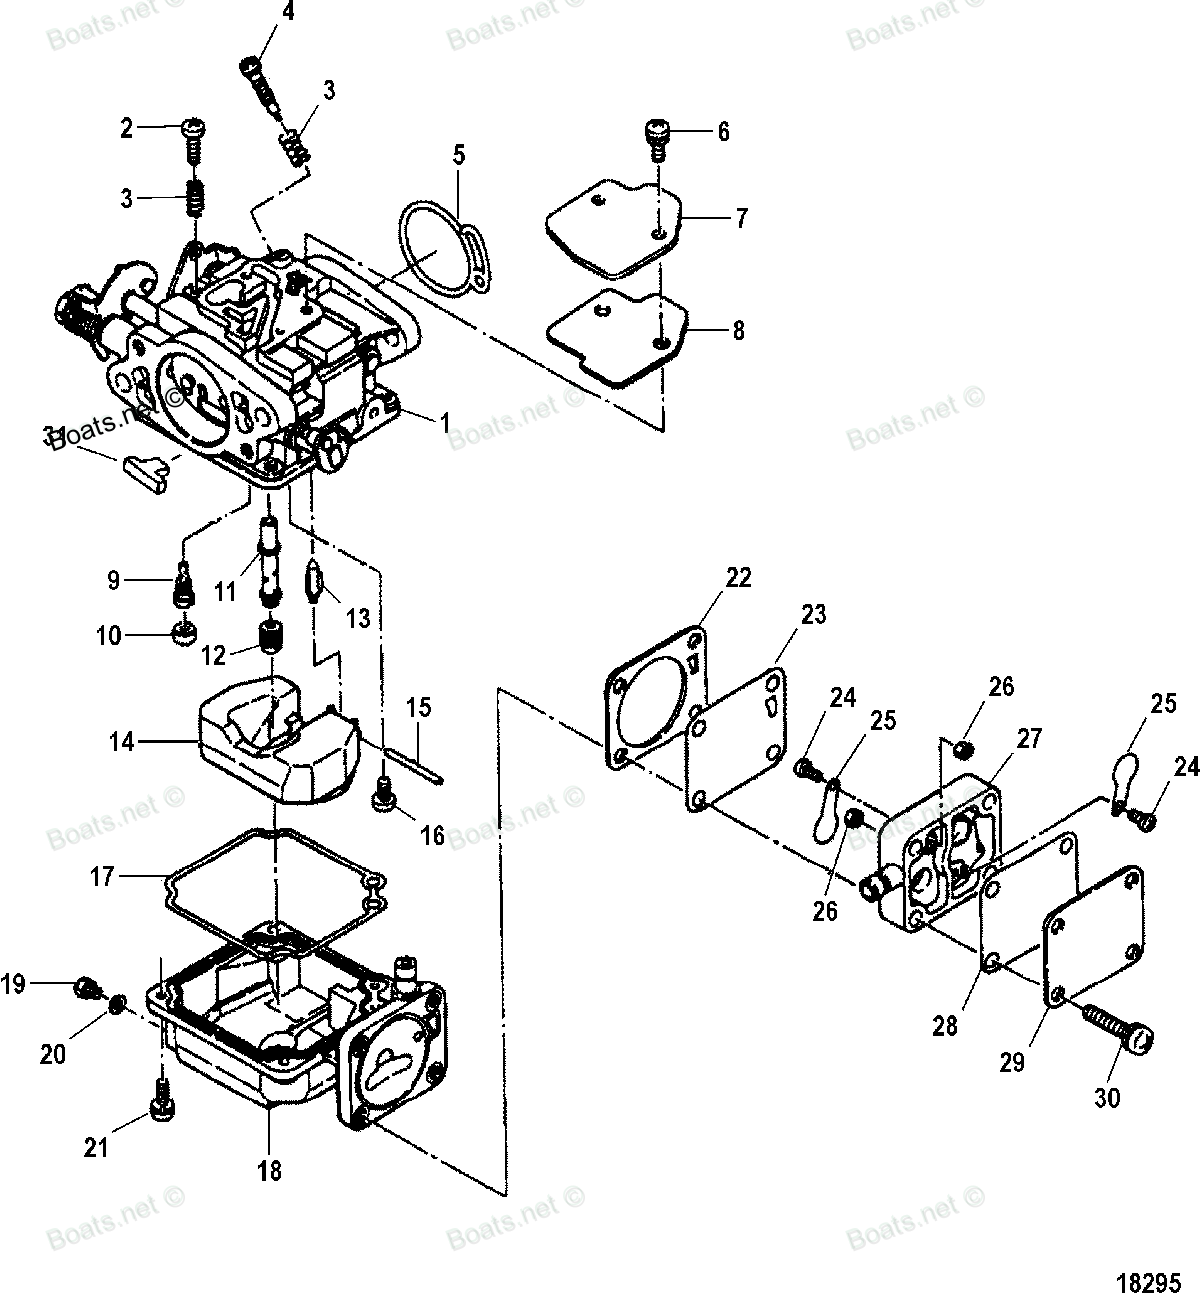 johnson carb rebuild instructions